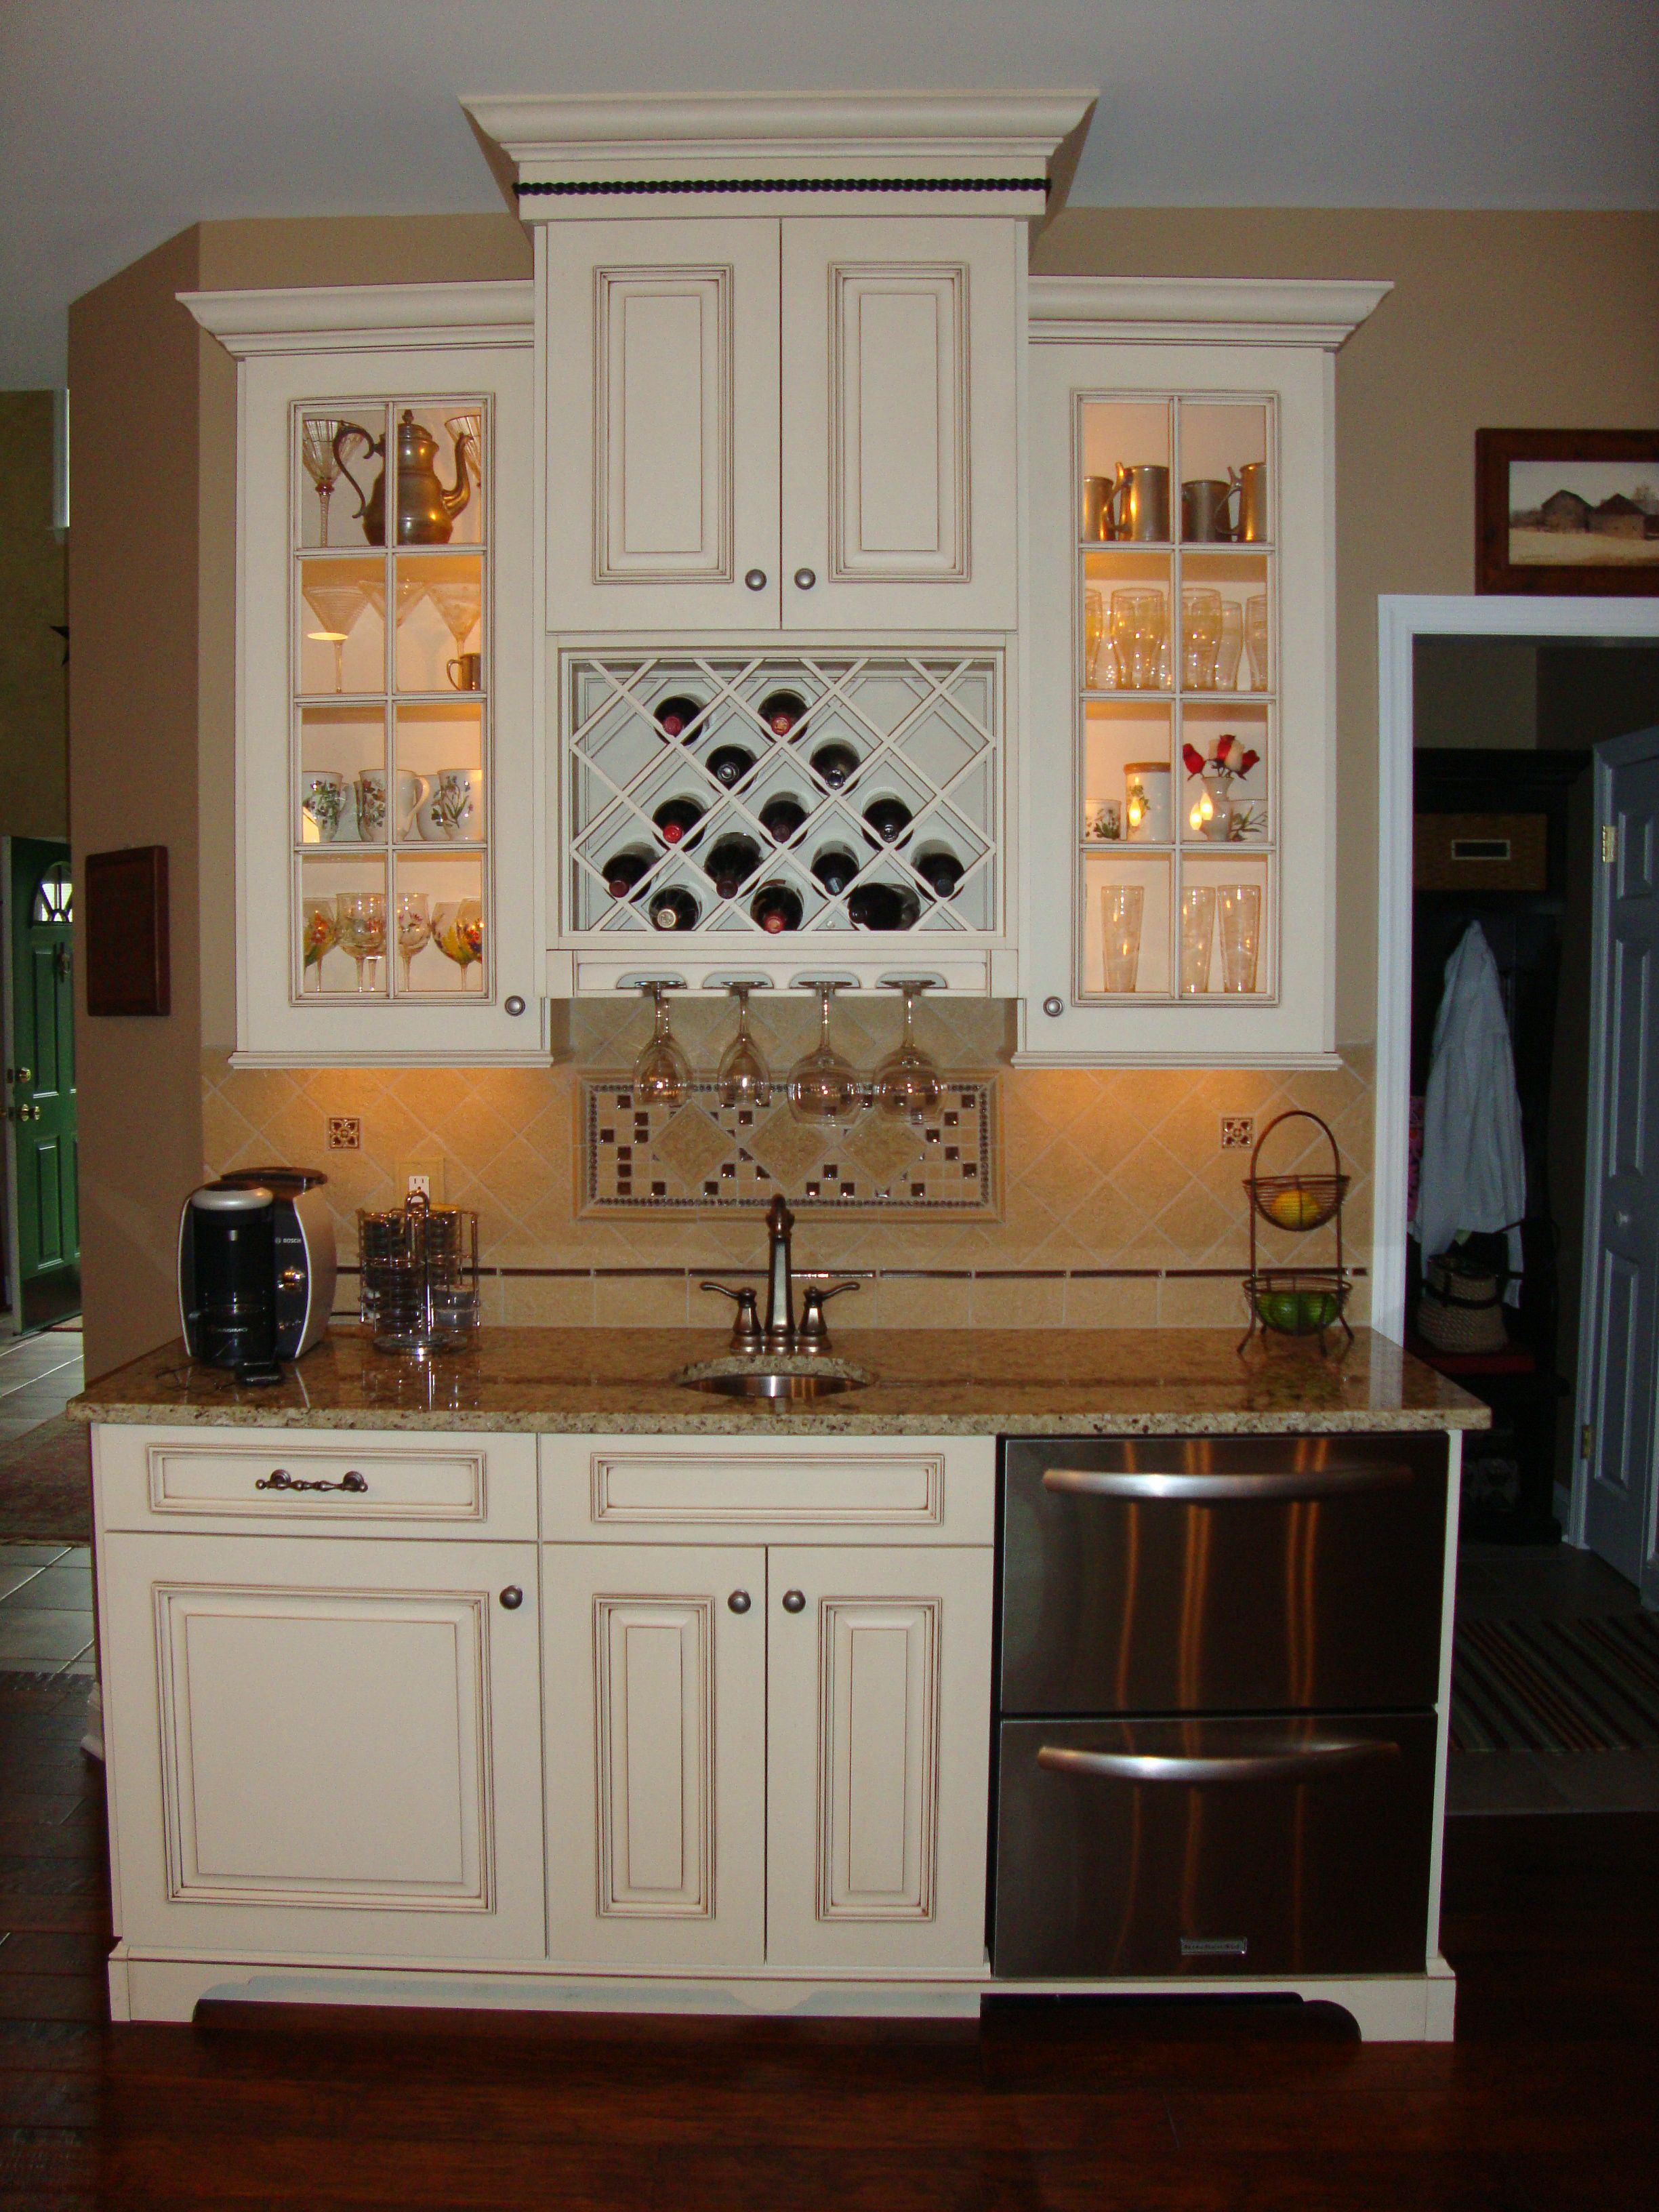 Cute built in wine rack and glass light up cabinets but i - Kitchen built in cupboards designs ...